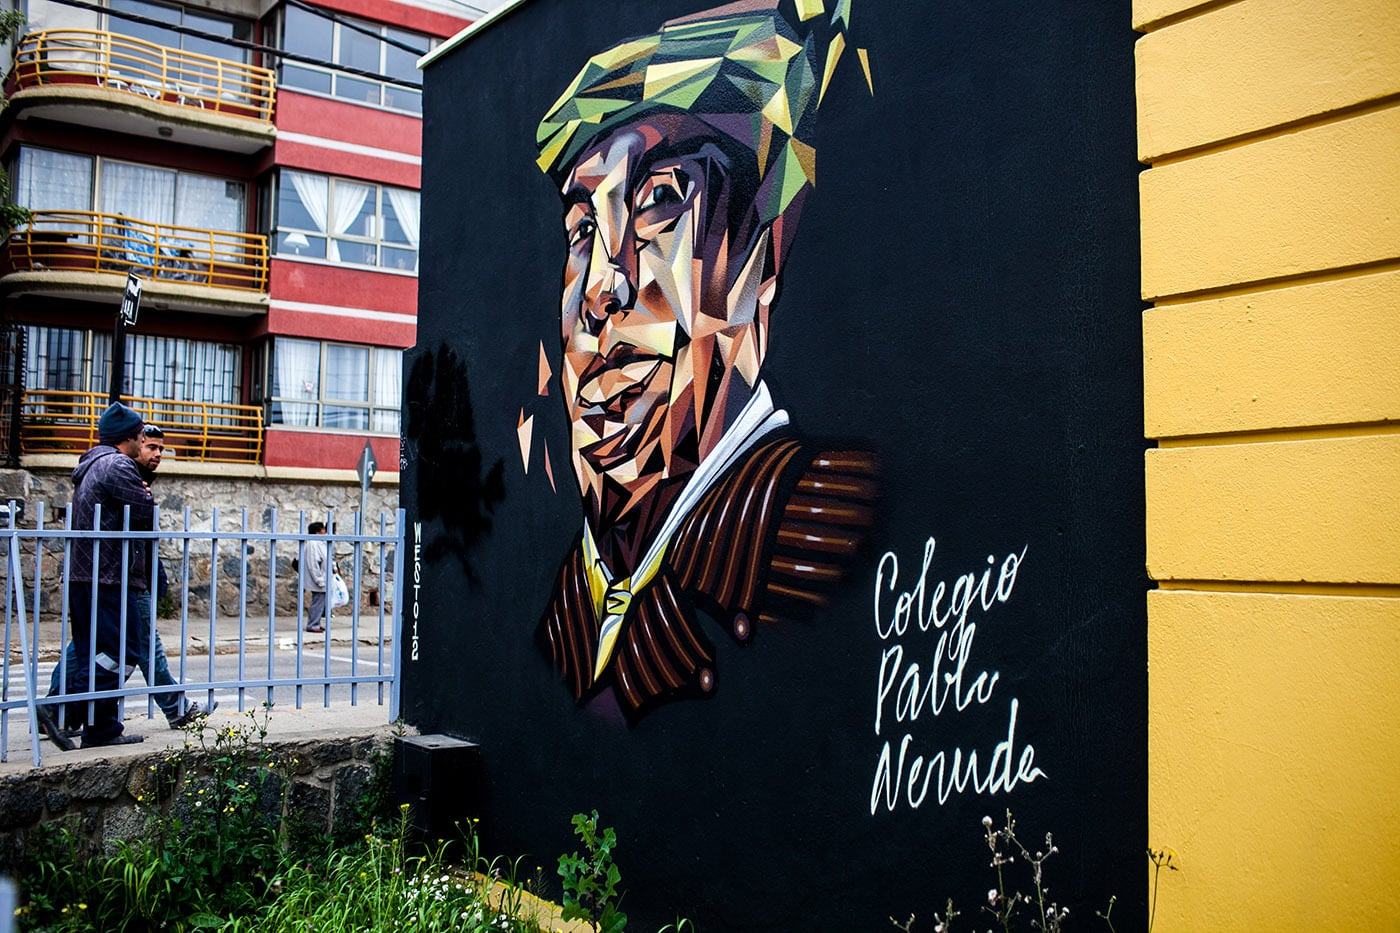 Best Street Art in Valparaiso, Chile - Pablo Neruda